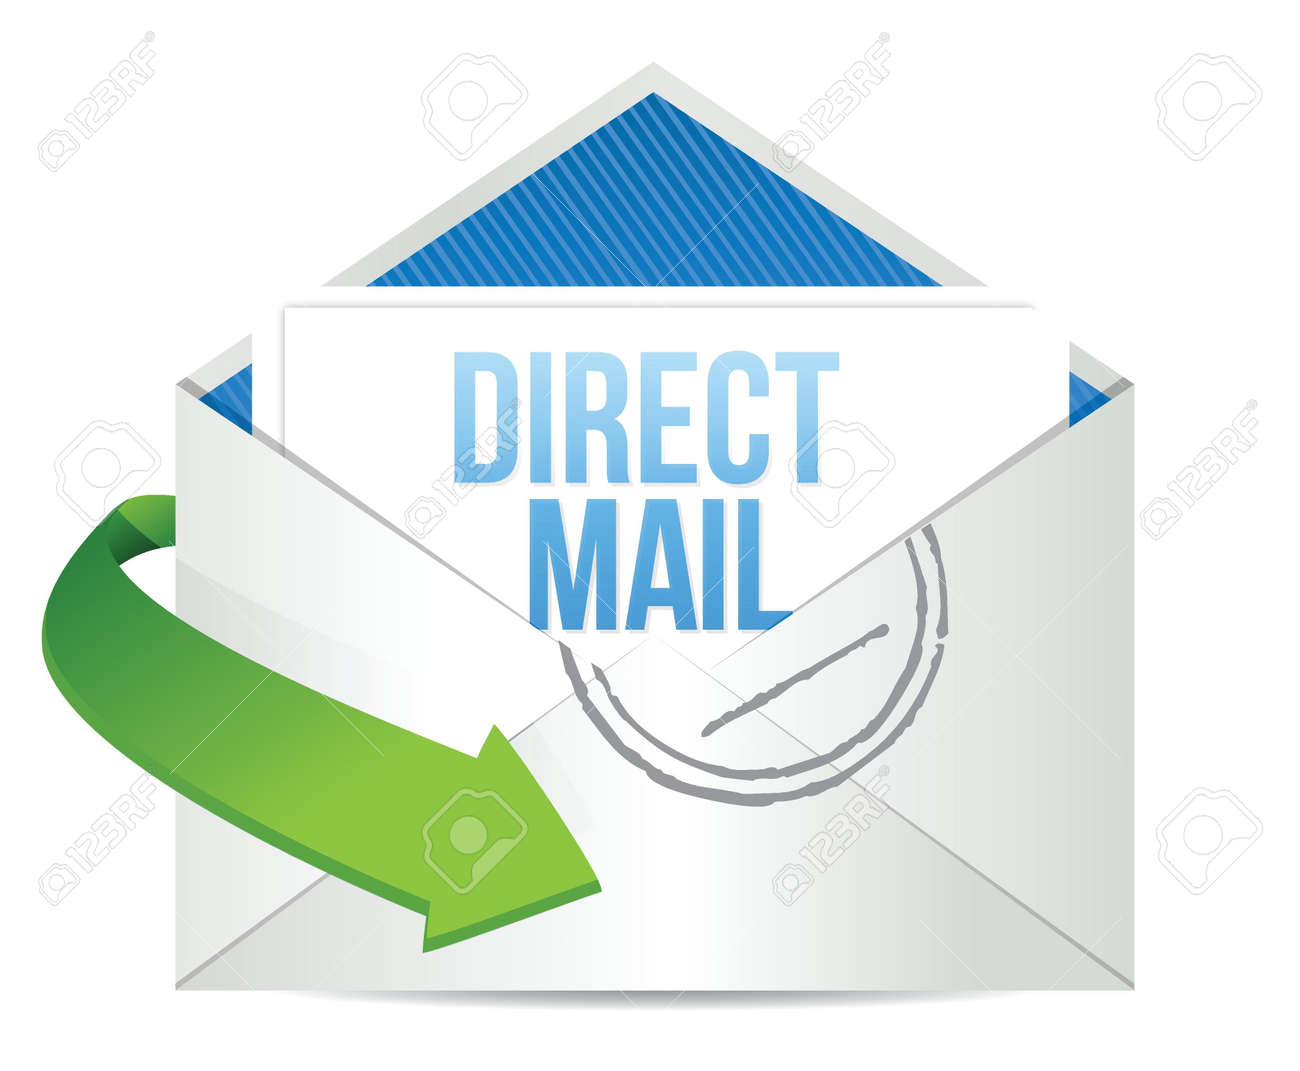 advertising Direct Mail working concept illustration design over a white background Stock Vector - 17871955